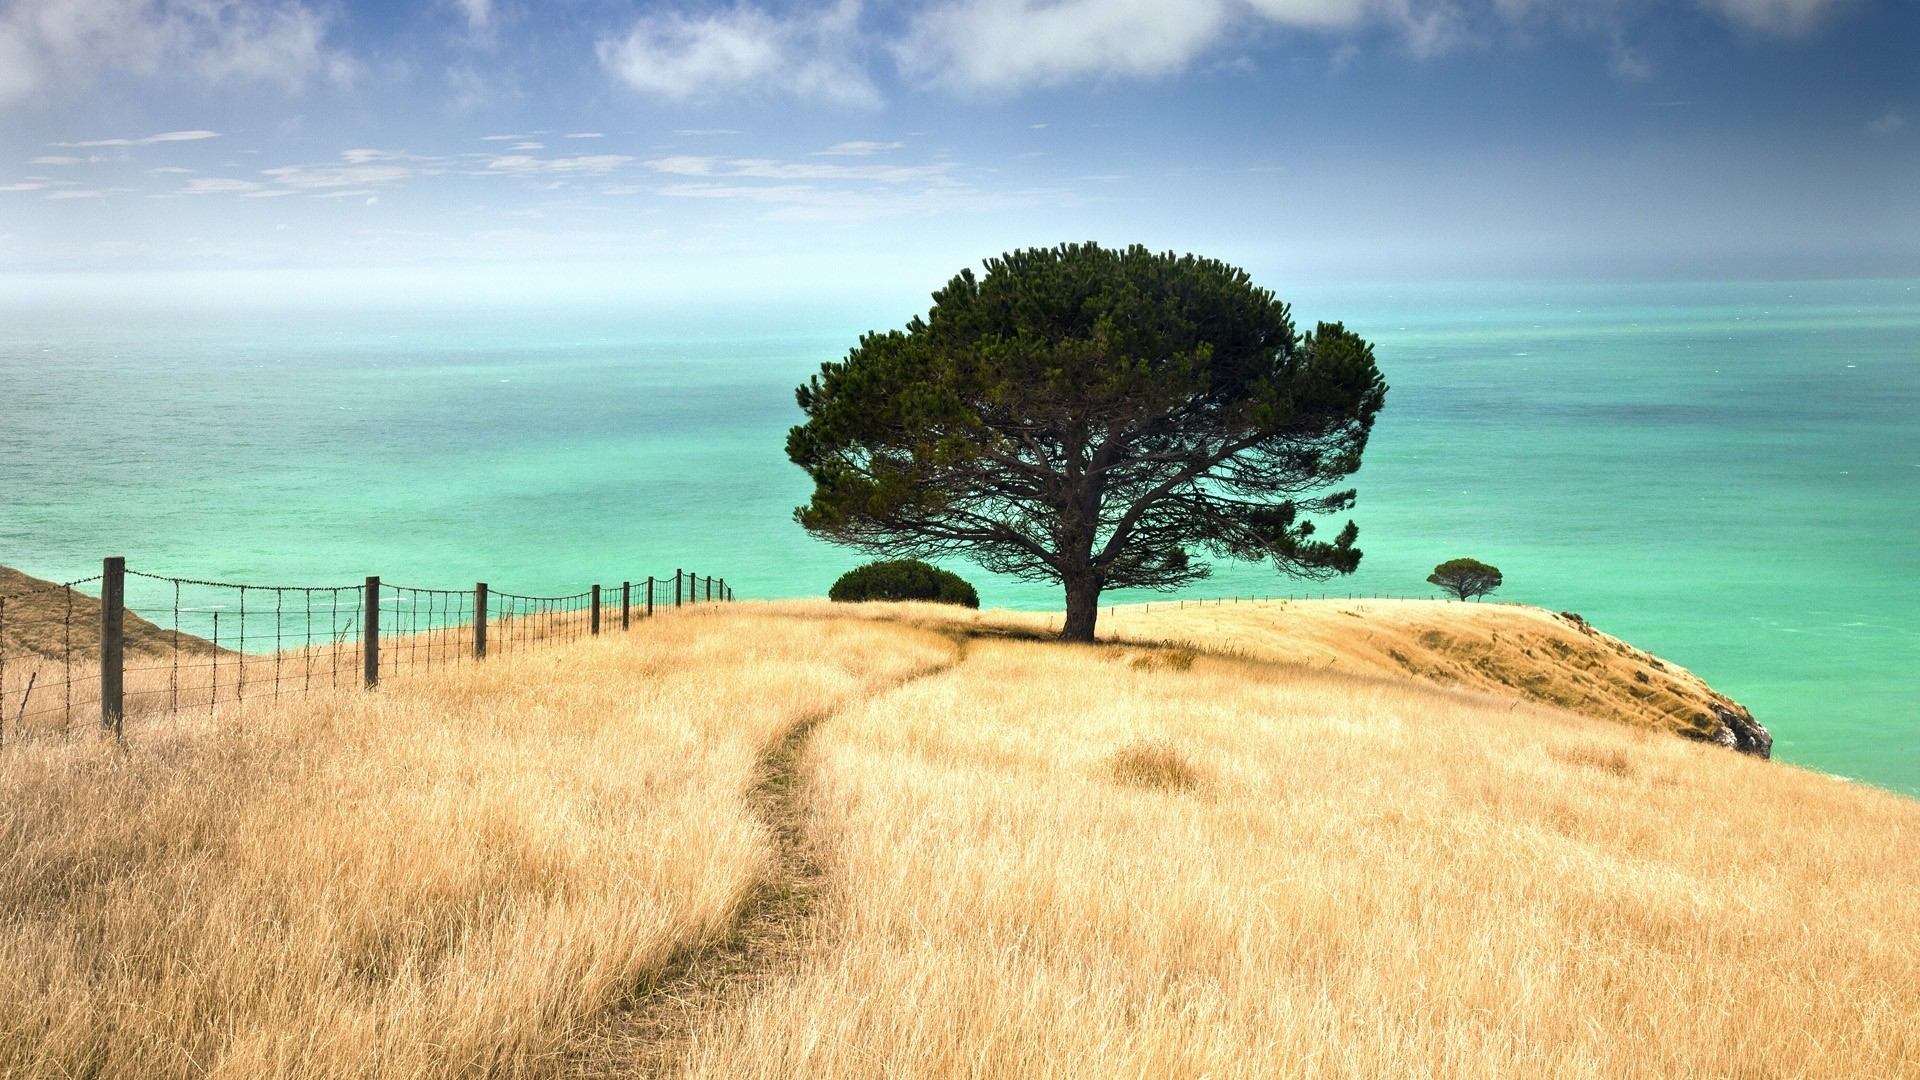 Best-background-images-new-zealand-New-Zealand-Best-intended-for-Backgroun-wallpaper-wp3403082